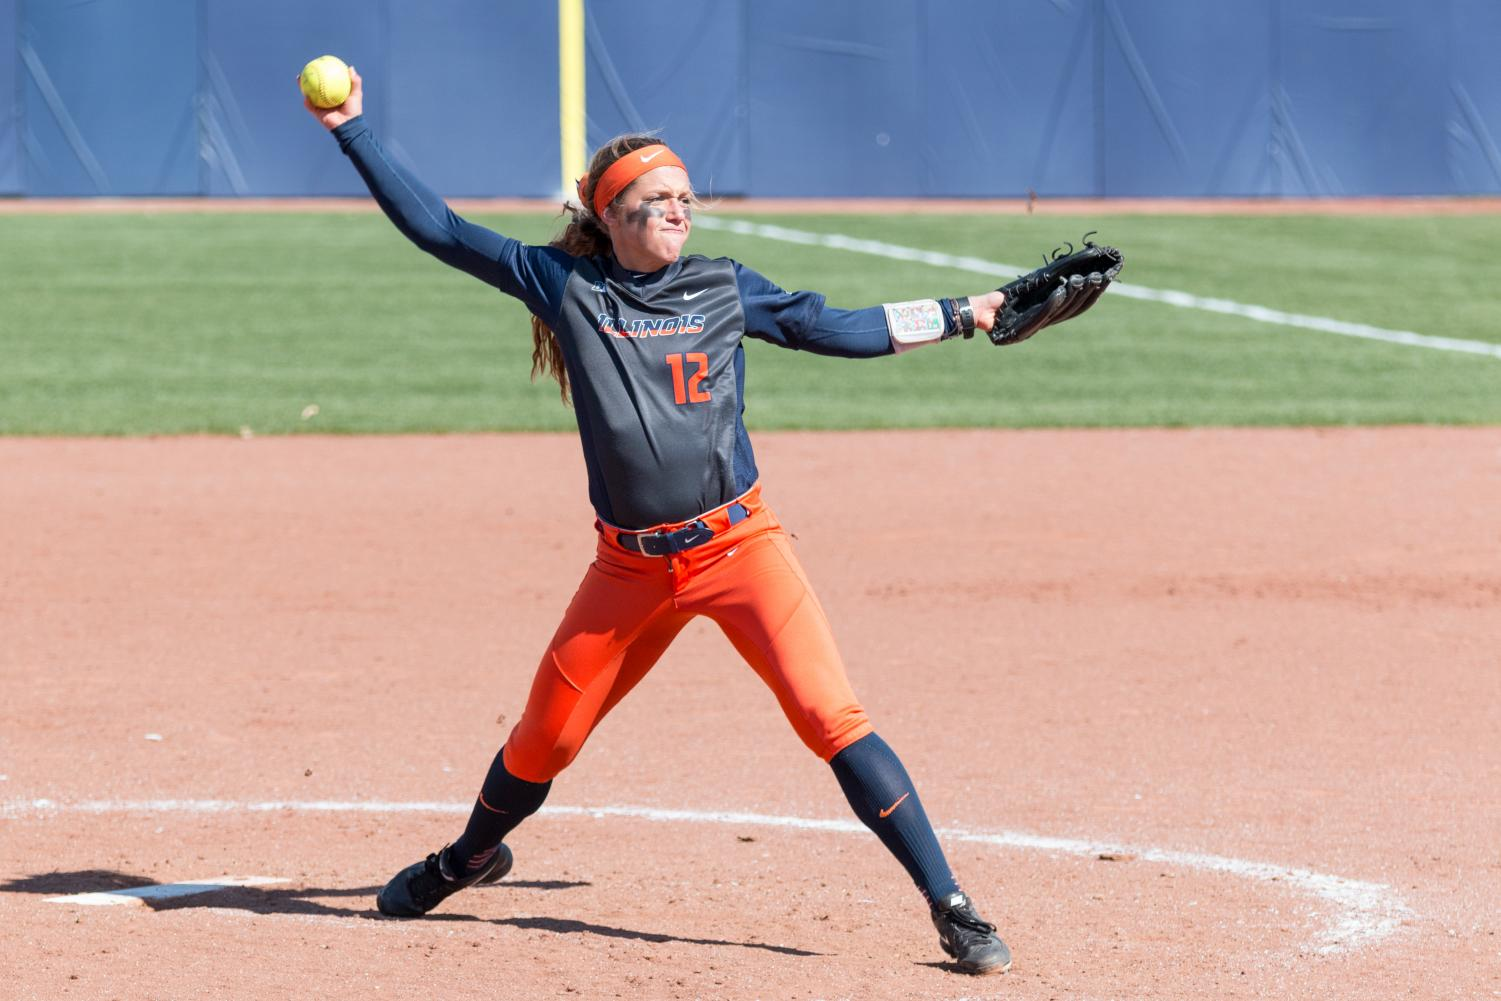 Illinois relief pitcher Taylor Edwards delivers the pitch during game two of the series against Nebraska at Eichelberger Field on April 2. The Illini lost 10-5.